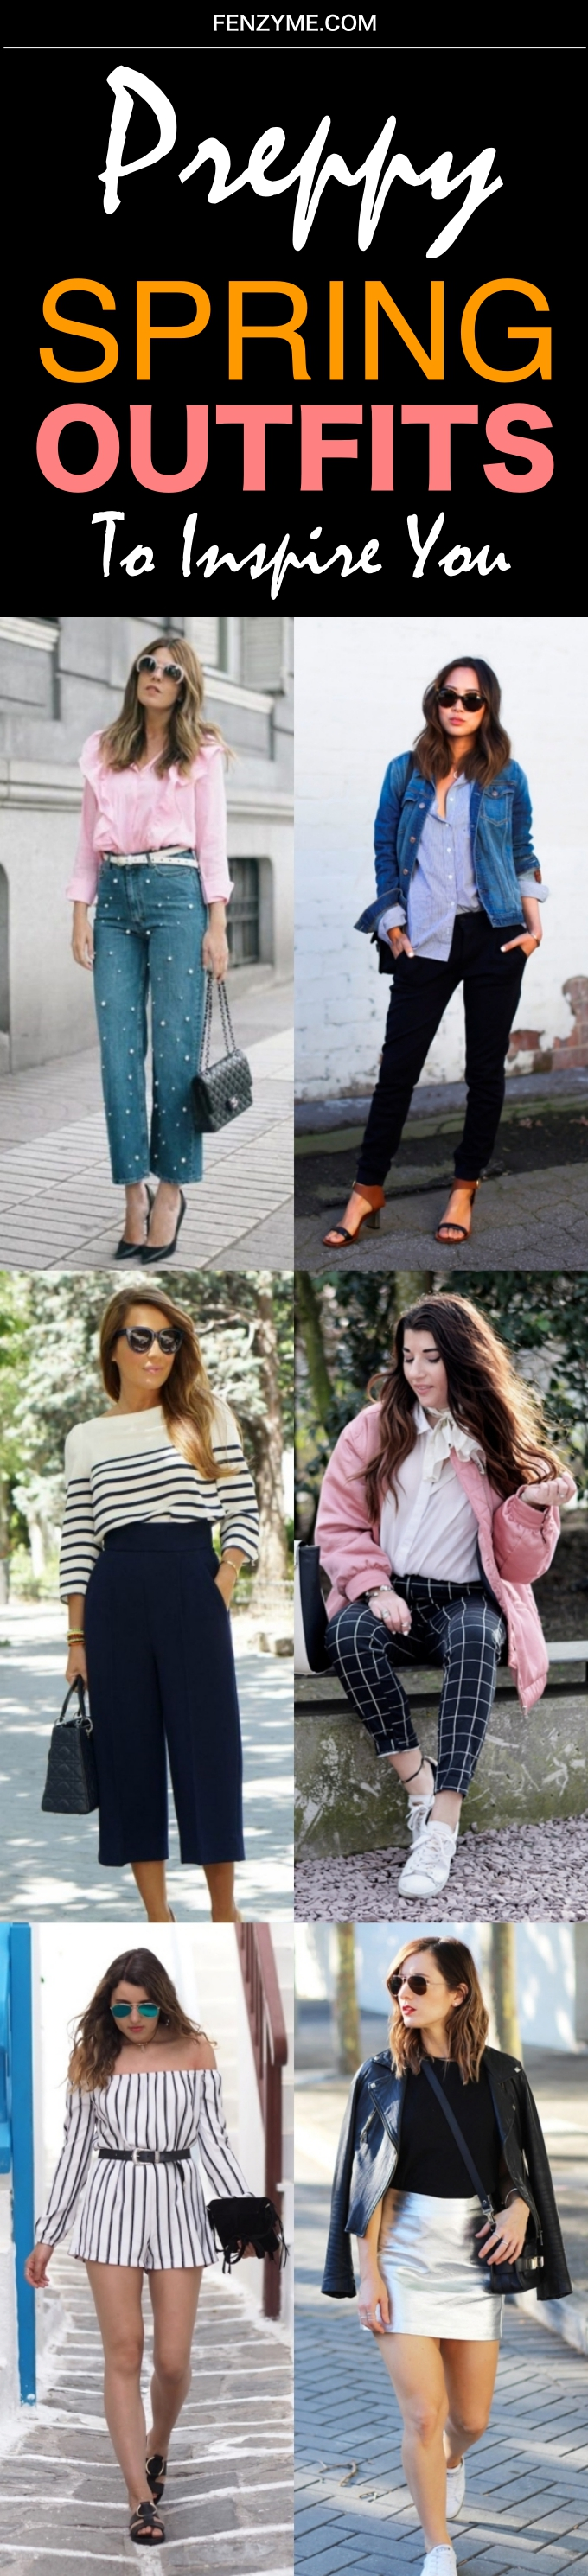 Preppy Spring Outfits to Inspire You